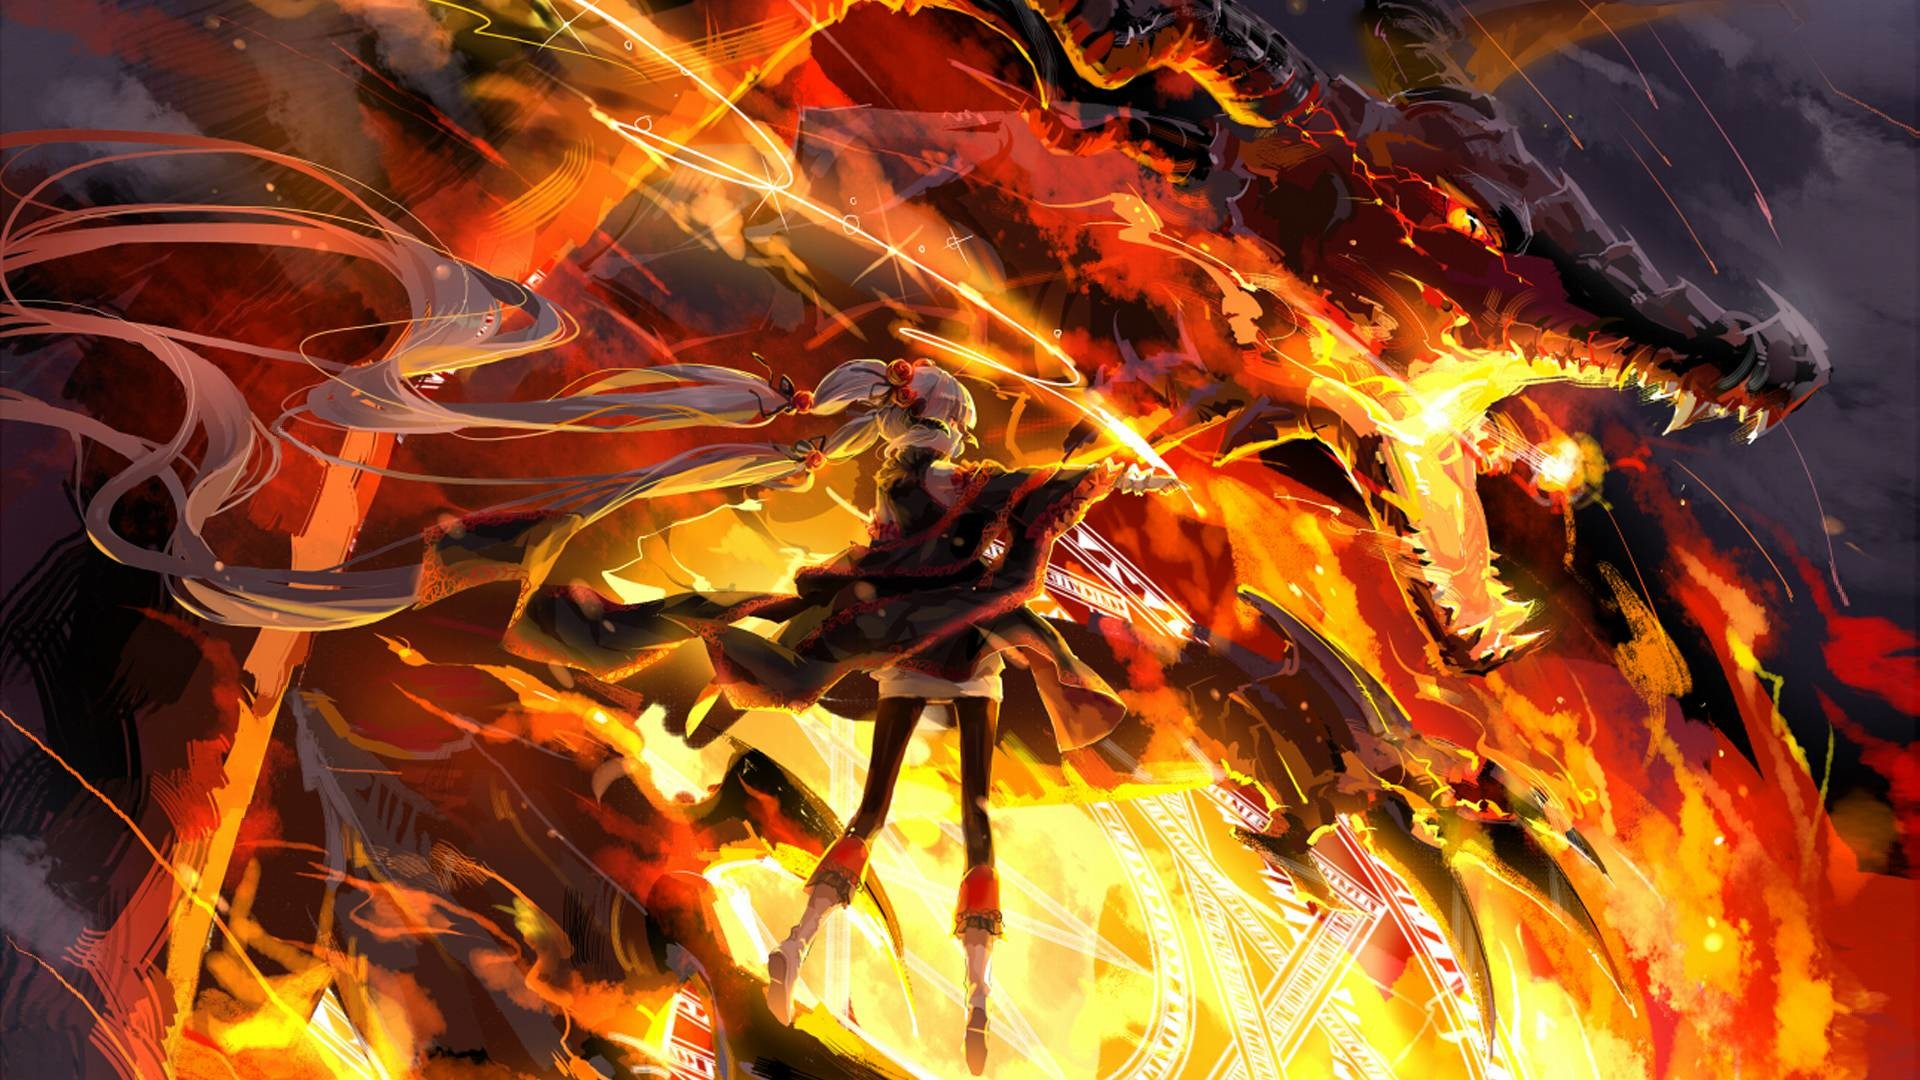 1920x1080 3d Fire Dragon Wallpapers | ECRG